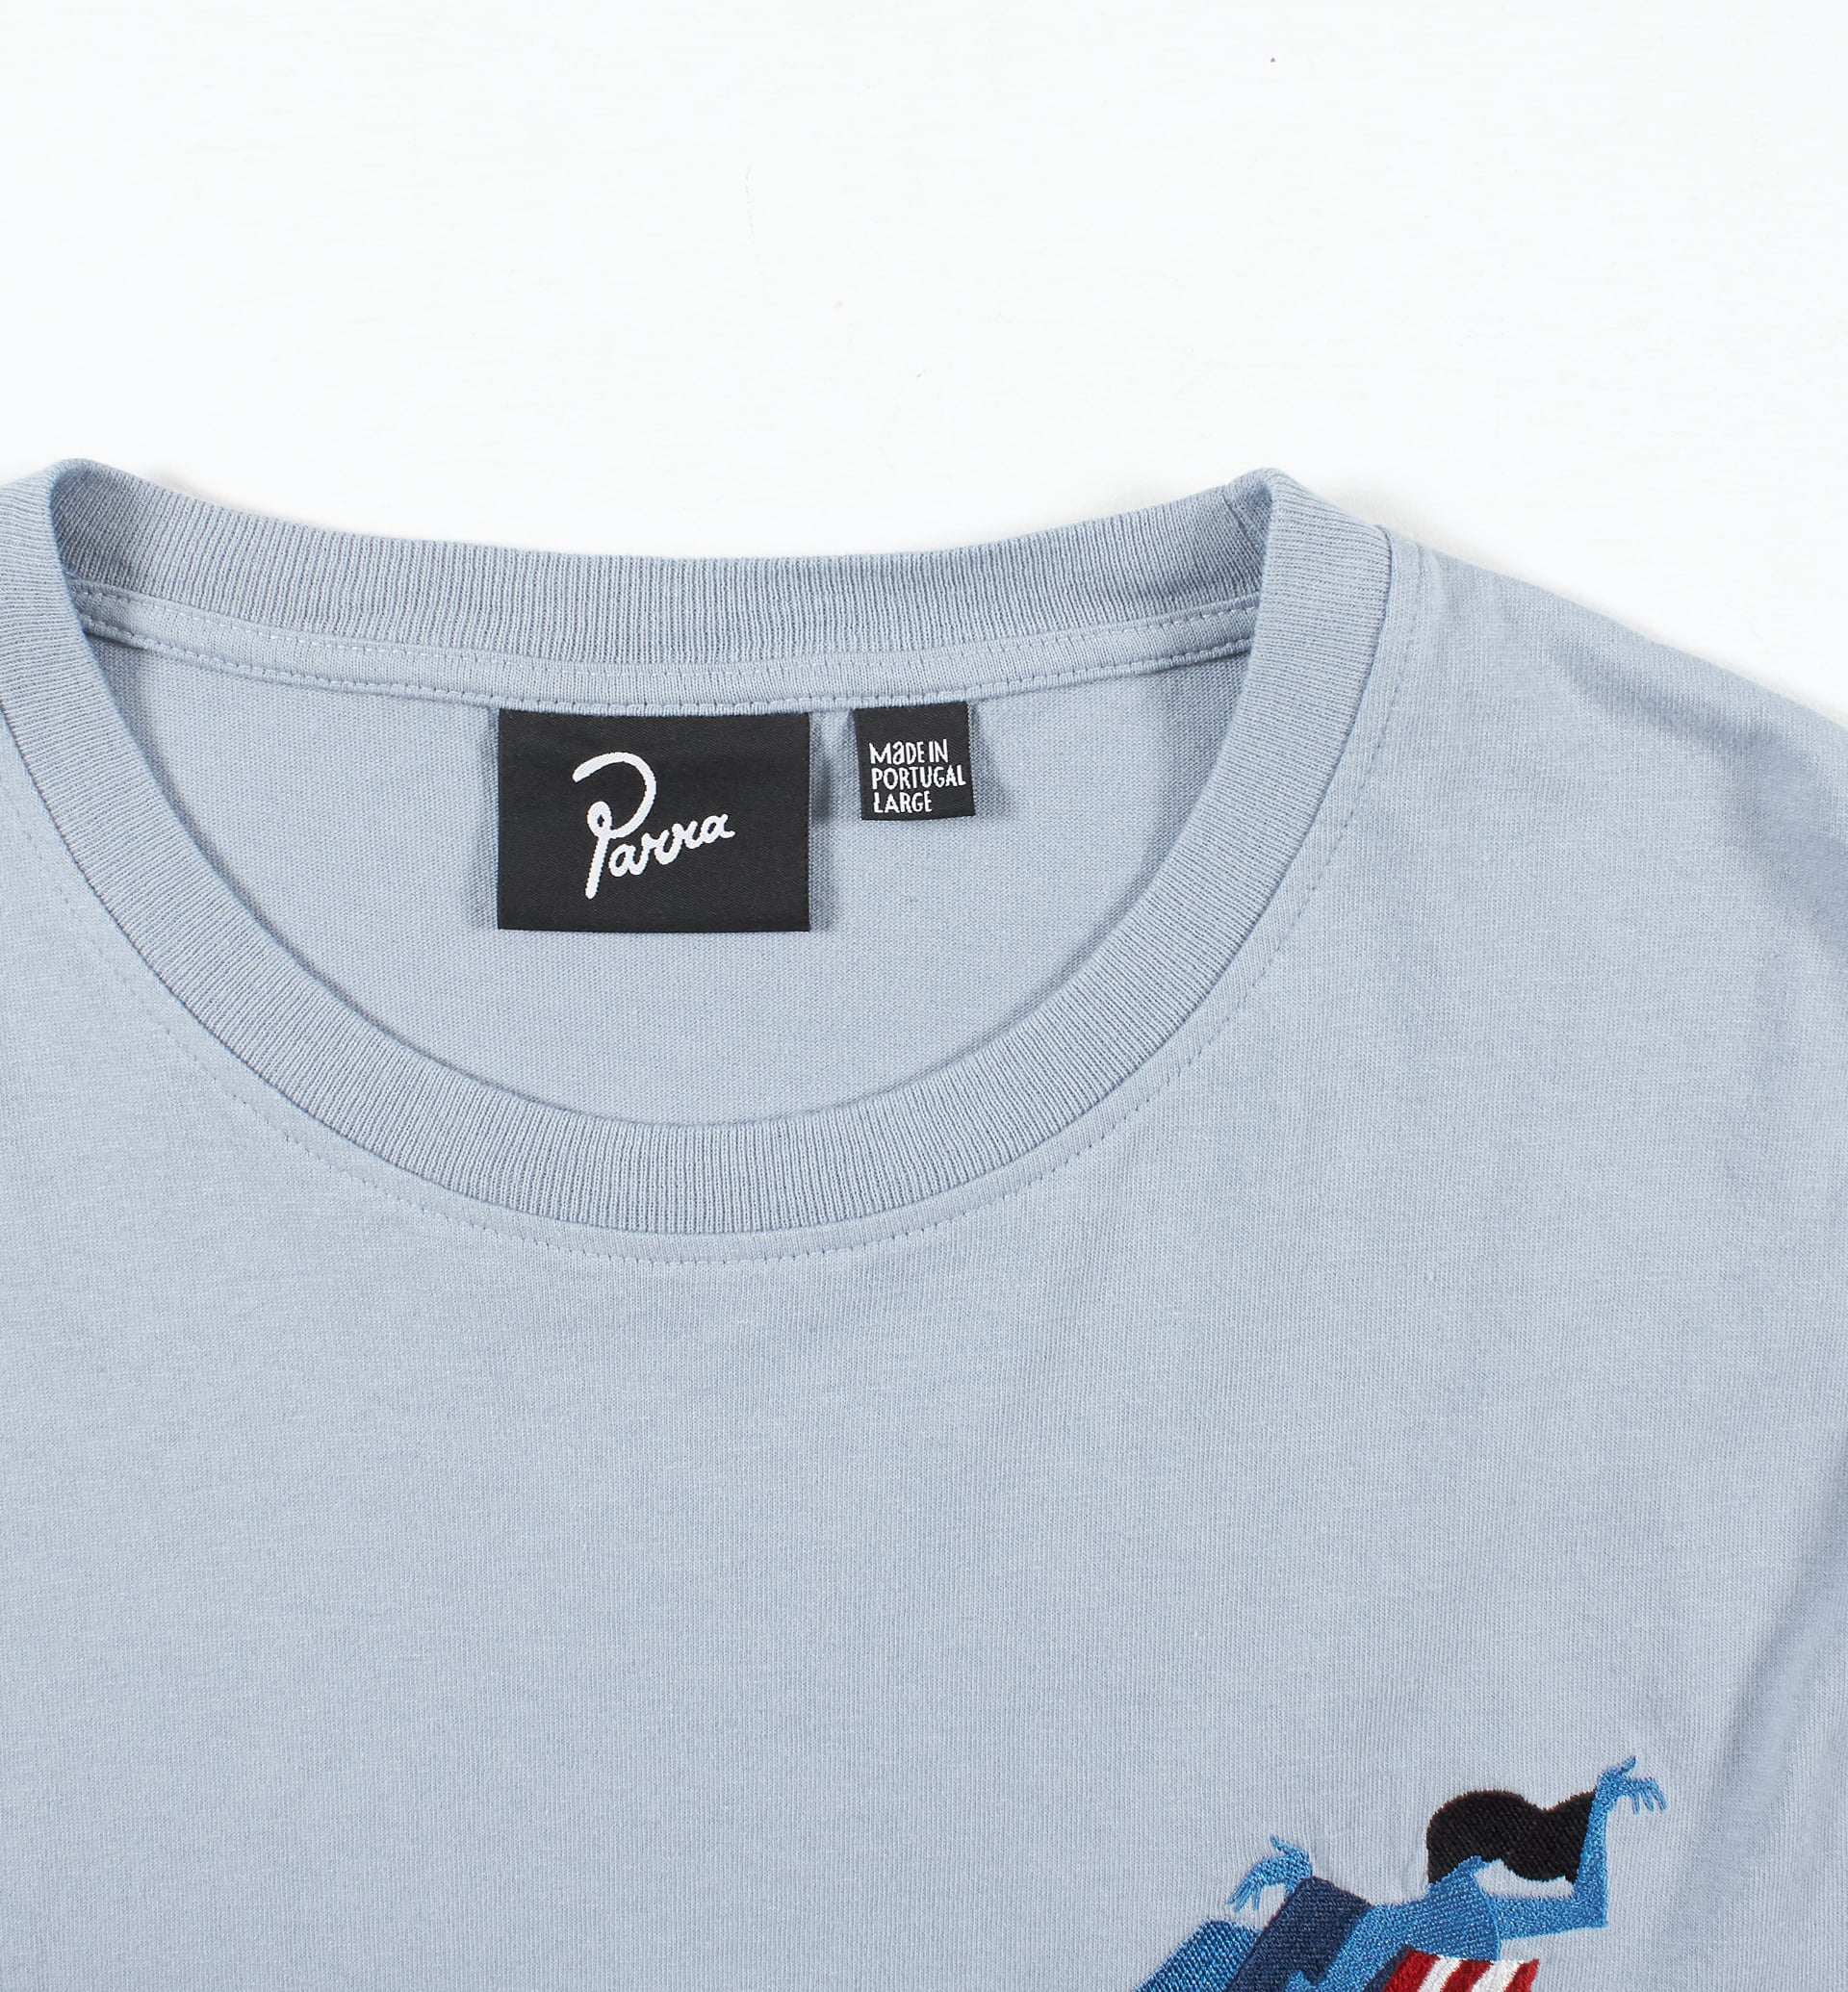 Parra - madame beach t-shirt